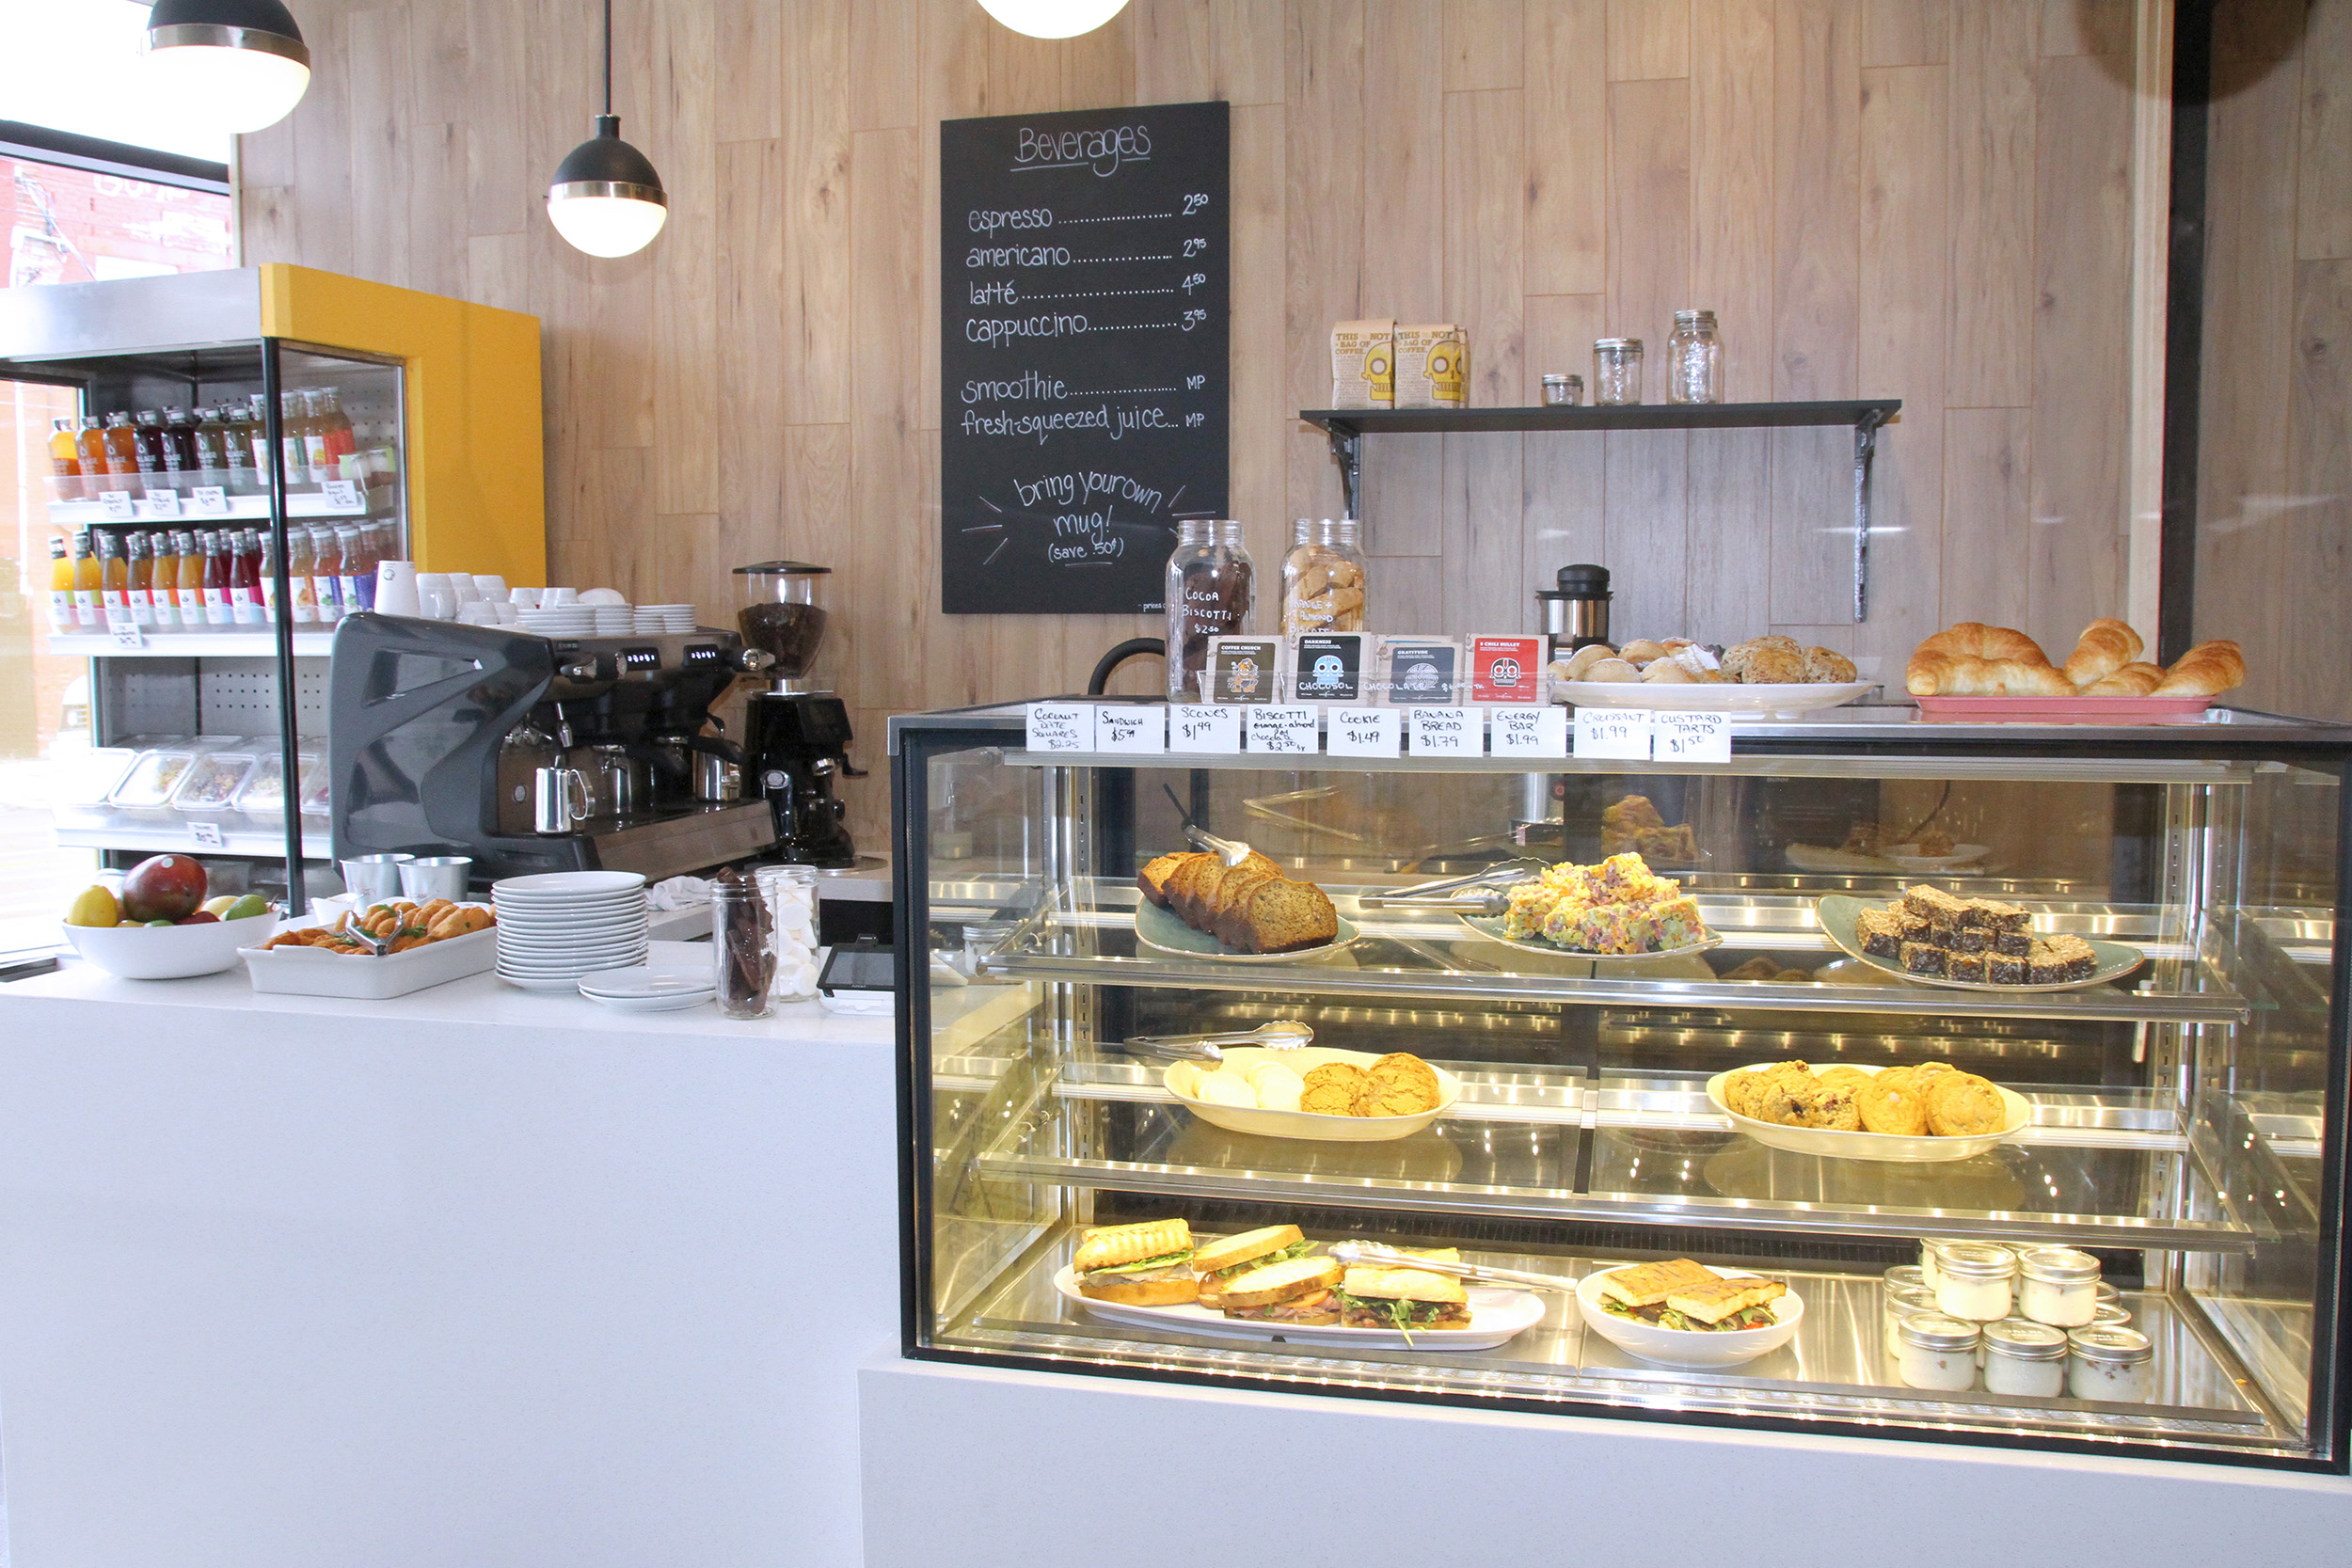 Unboxed-Market-Cafe-Bakery.jpg